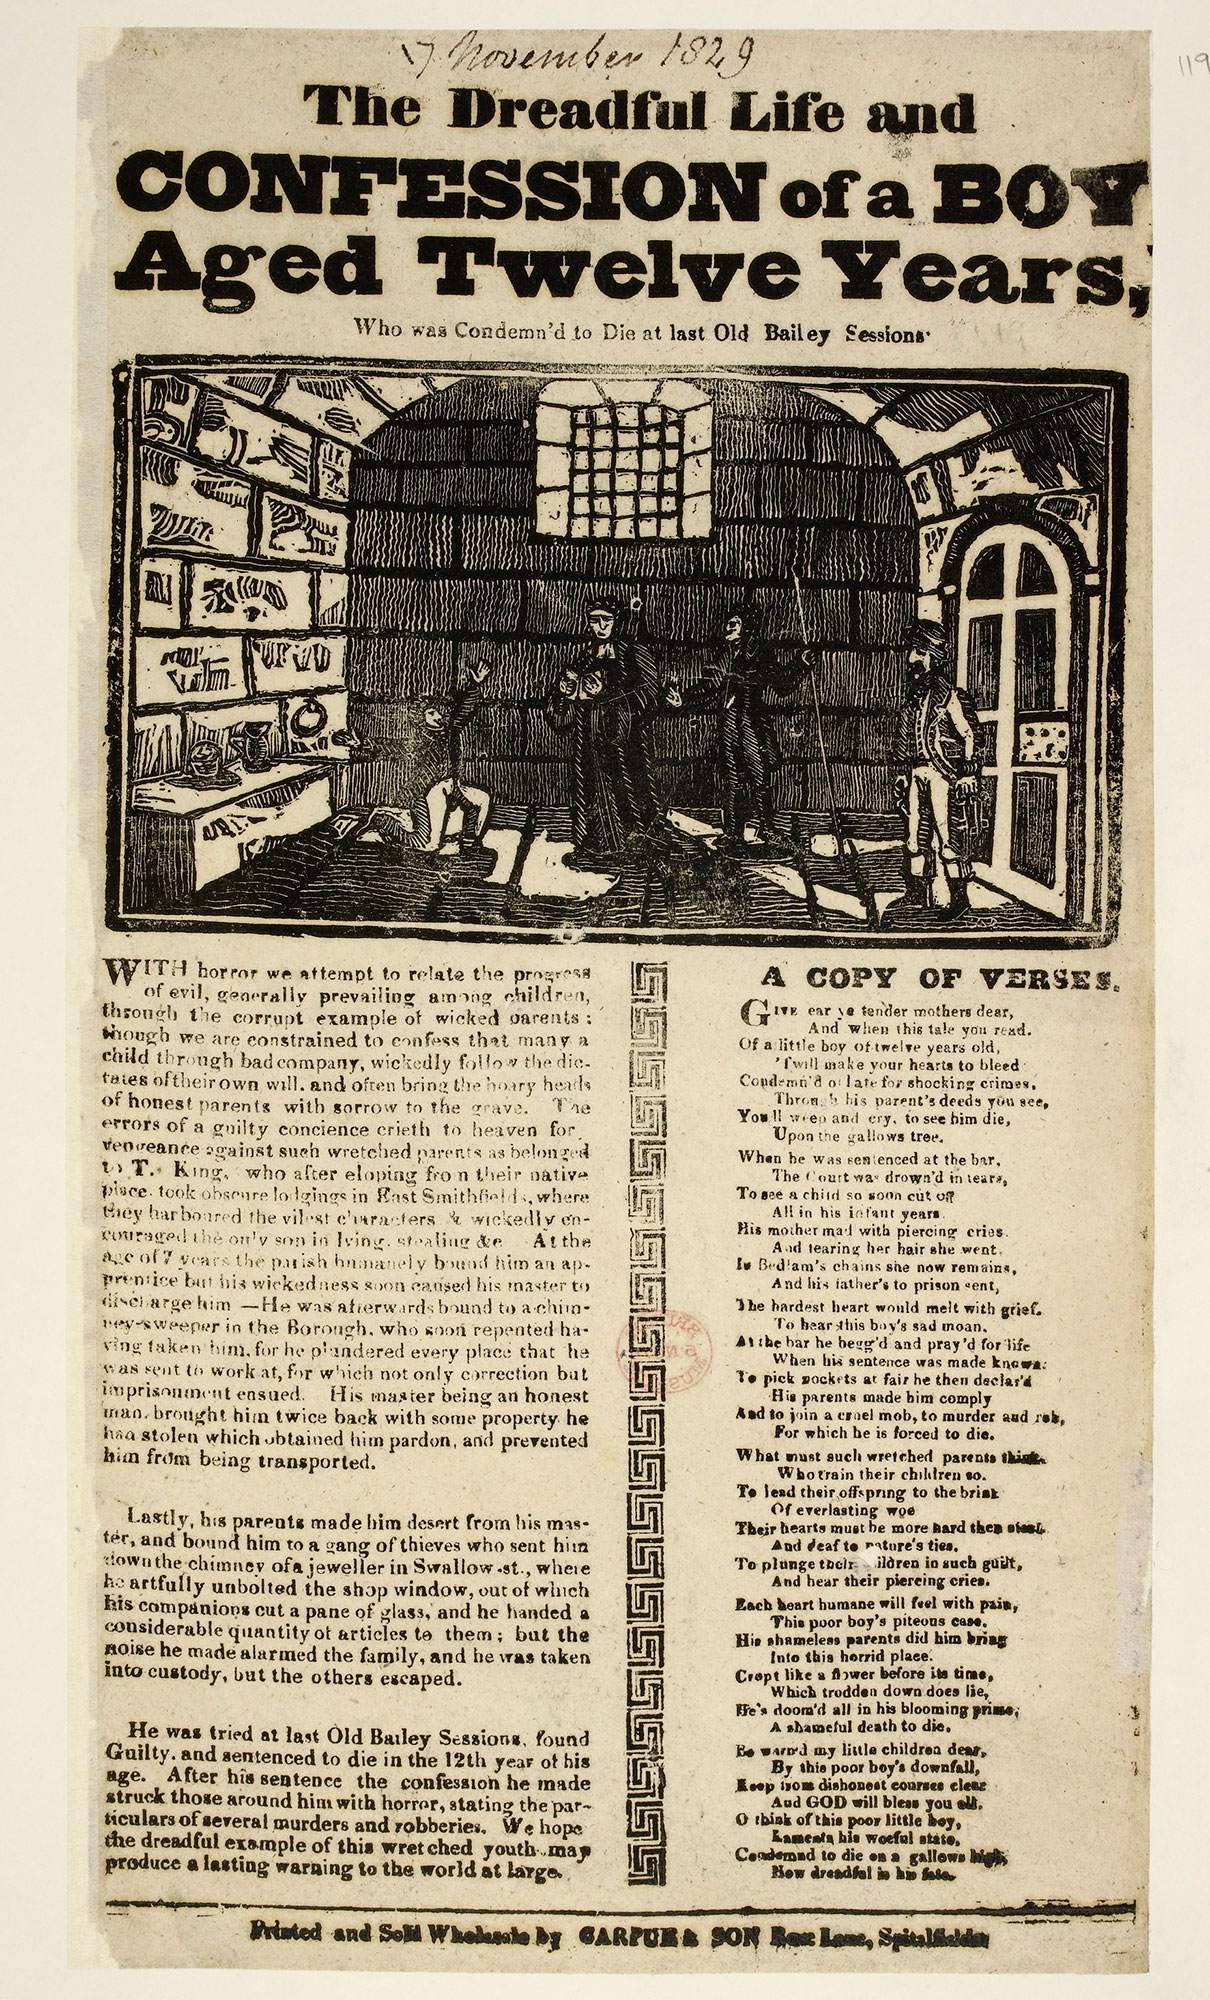 Broadside: The Dreadful Life and Confession of a Boy Aged Twelve Years